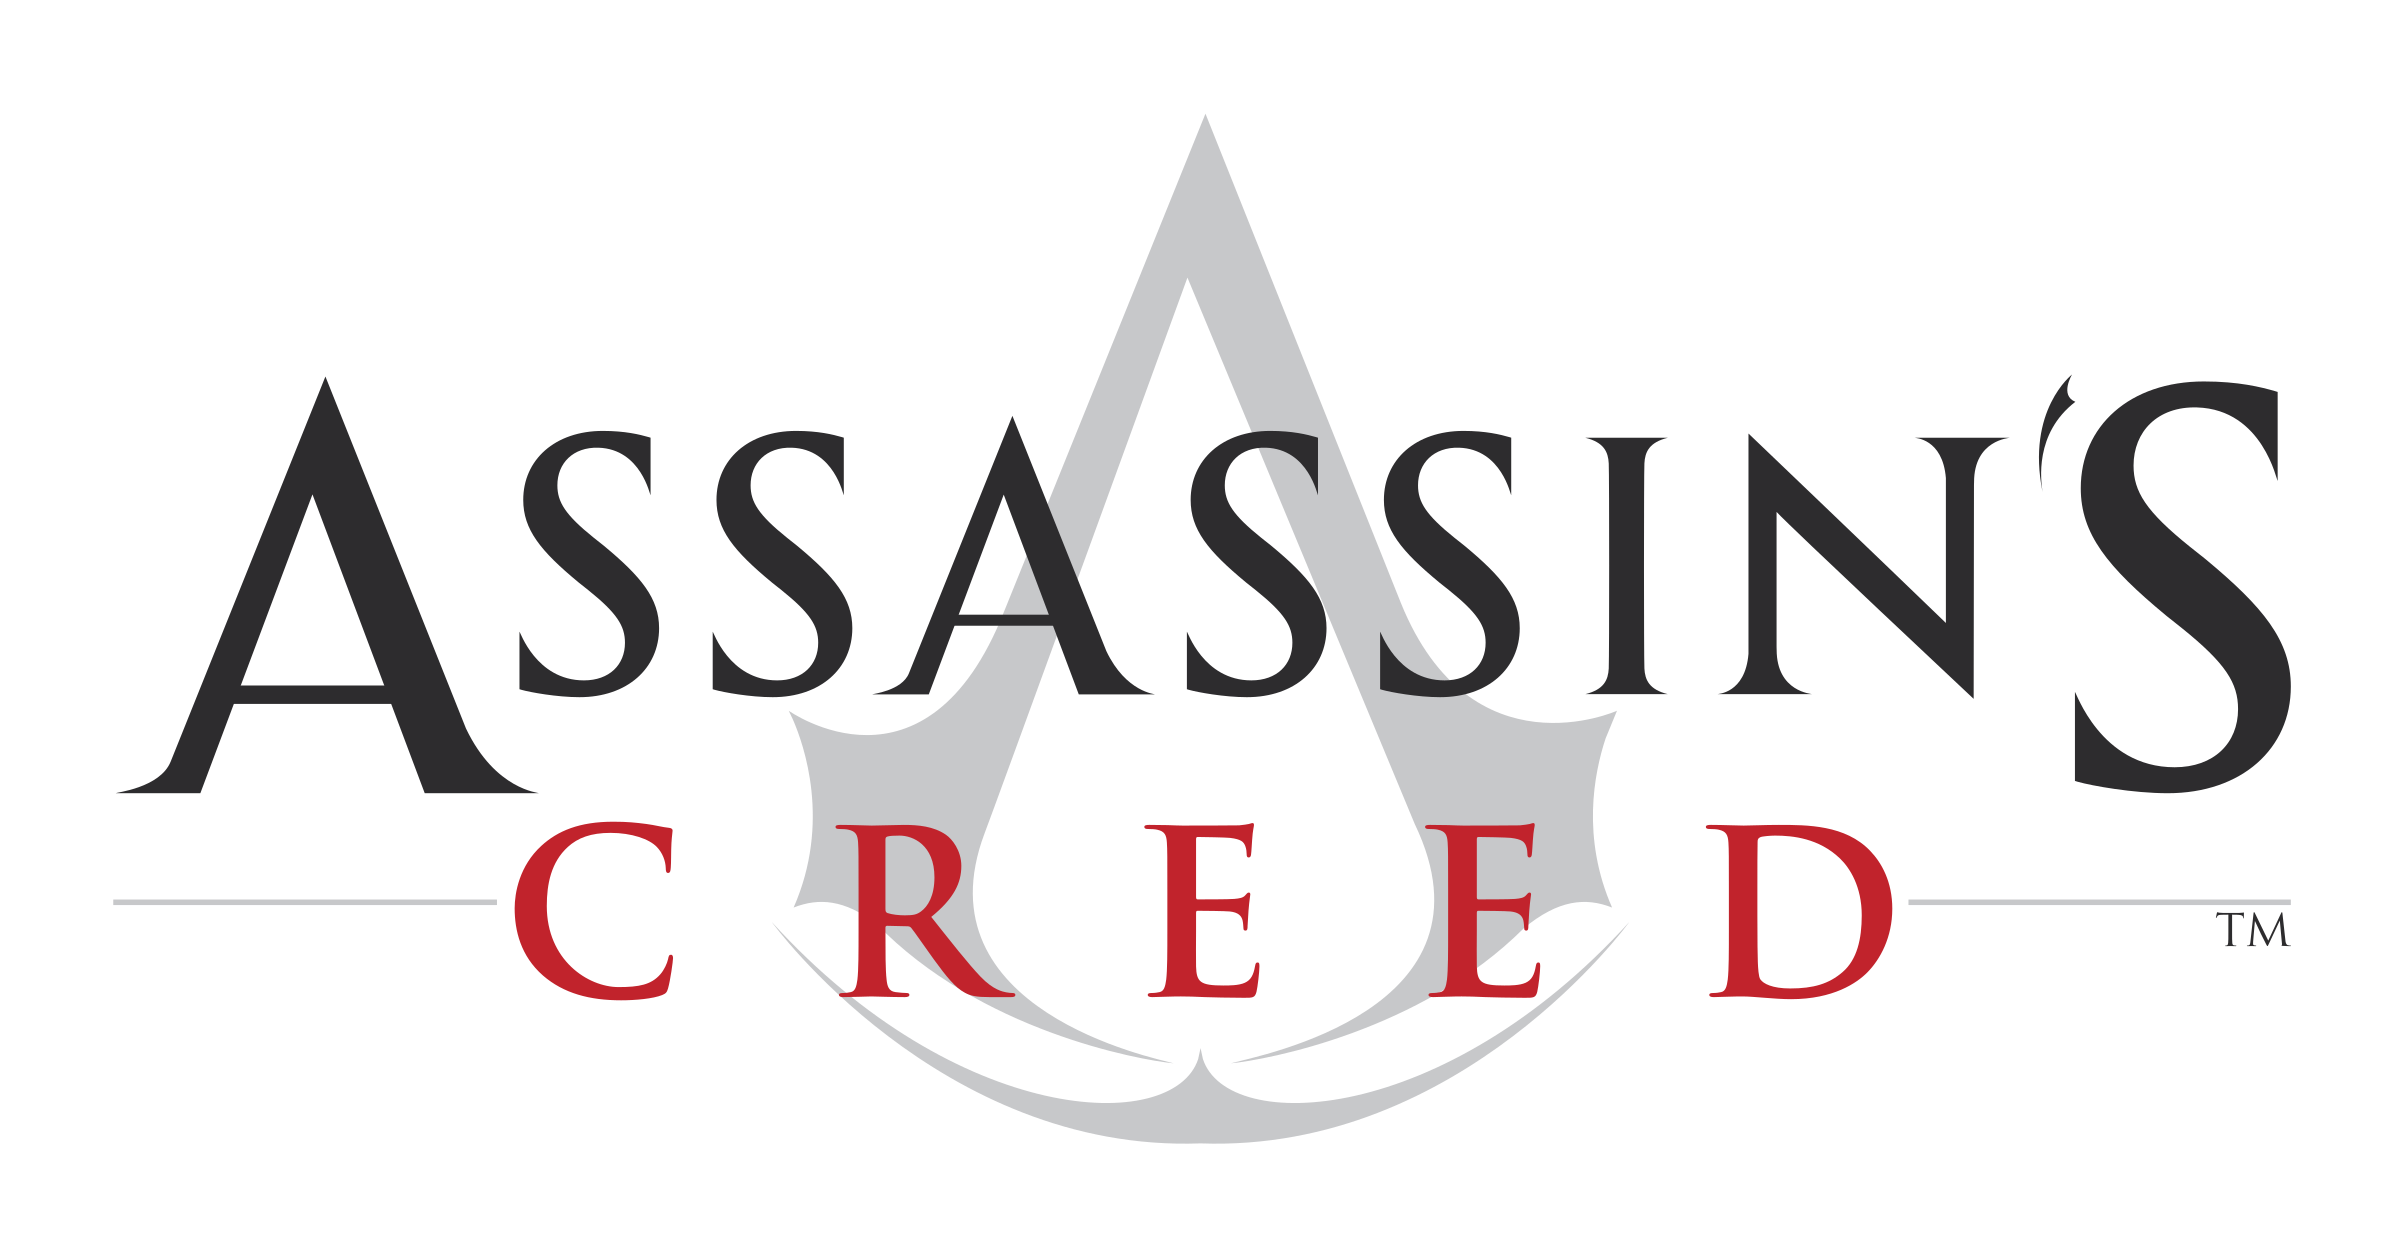 Assassins Creed Logo Png Transparent Svg Vector Freebie Supply